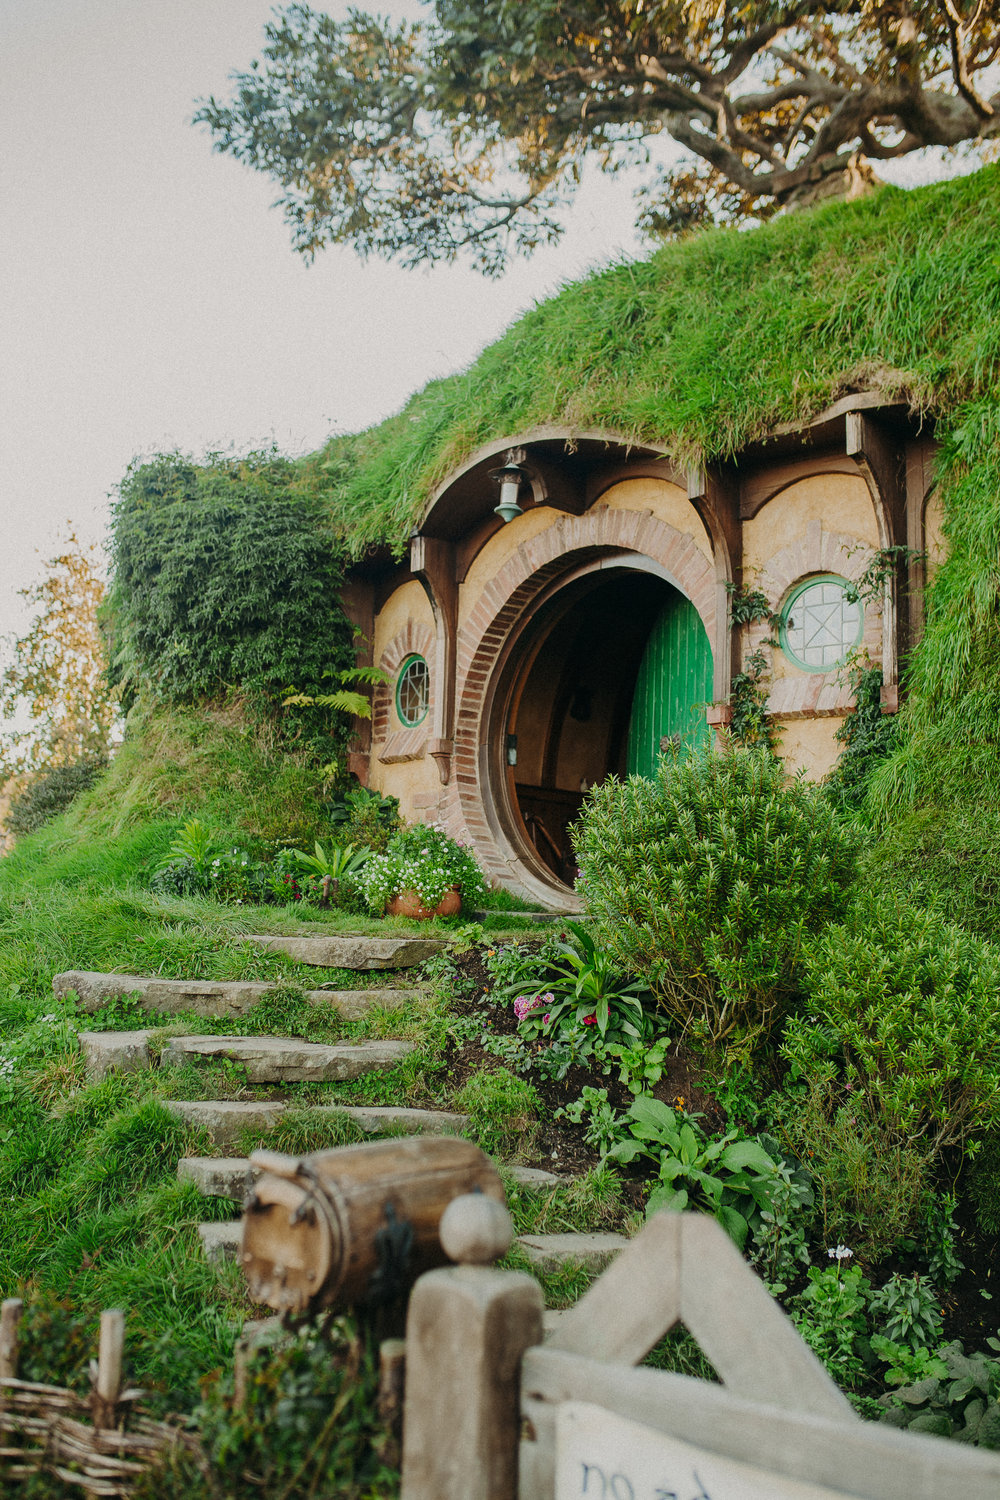 hobbiton-new-zealand-lord-of-the-rings-tour-9.jpg